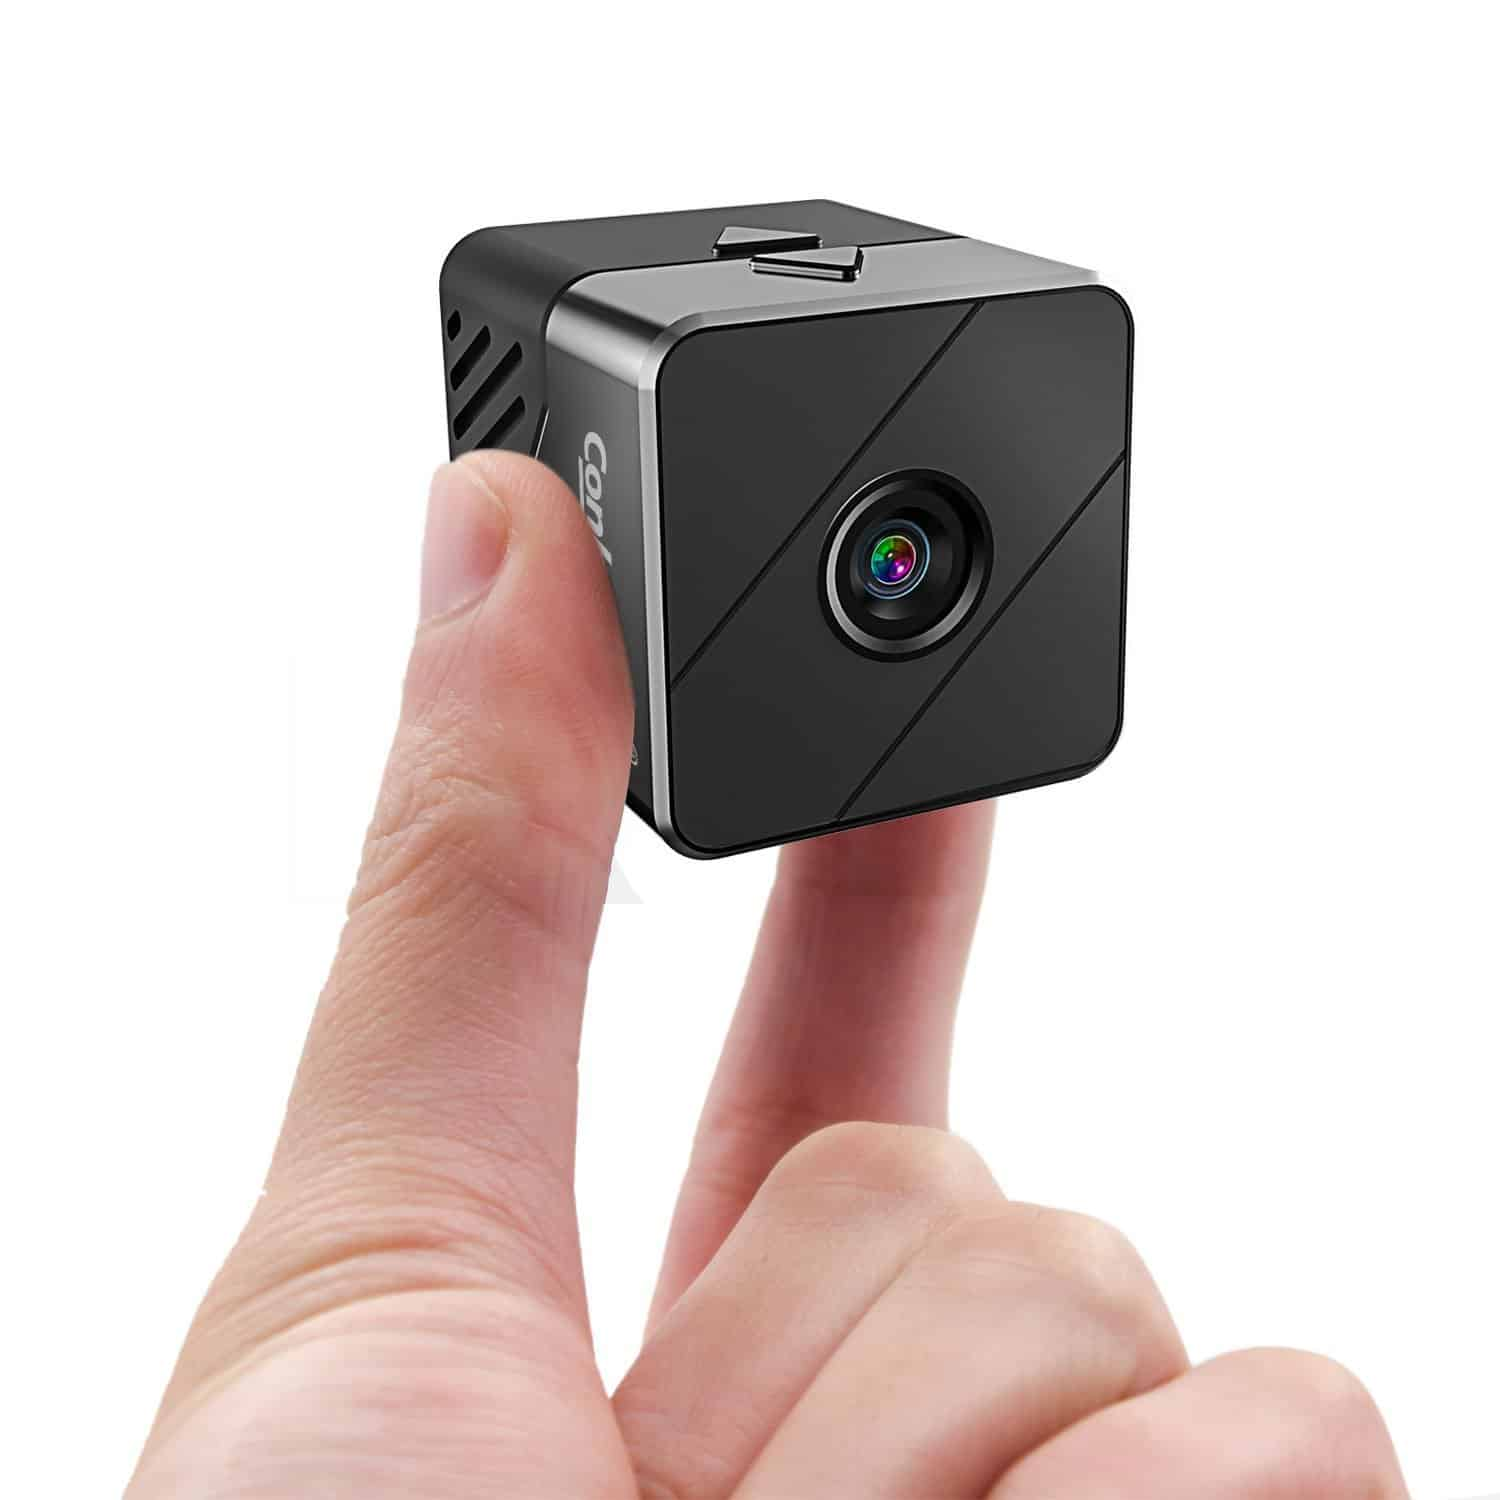 Conbruv T33 Mini Spy Camera Review